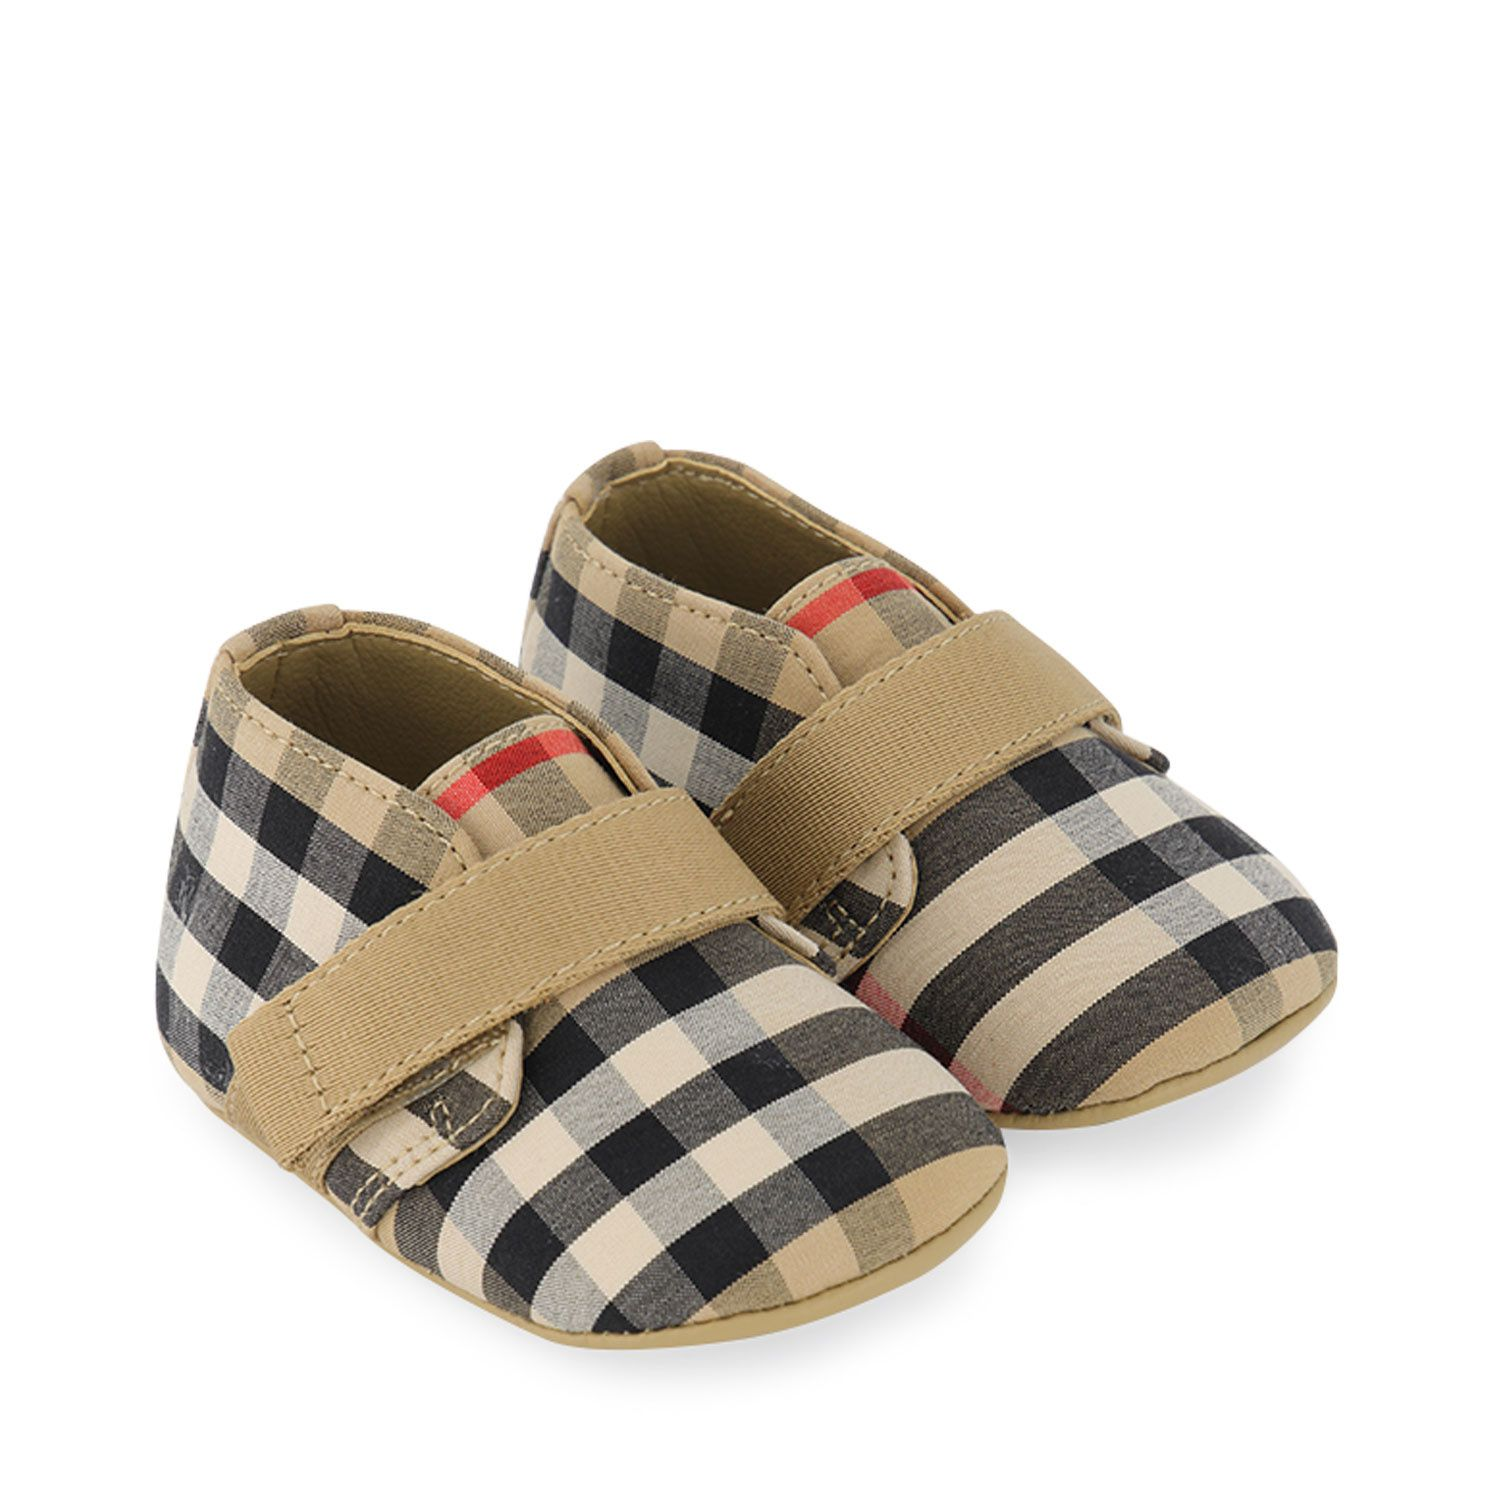 Picture of Burberry 8031077 baby shoes beige